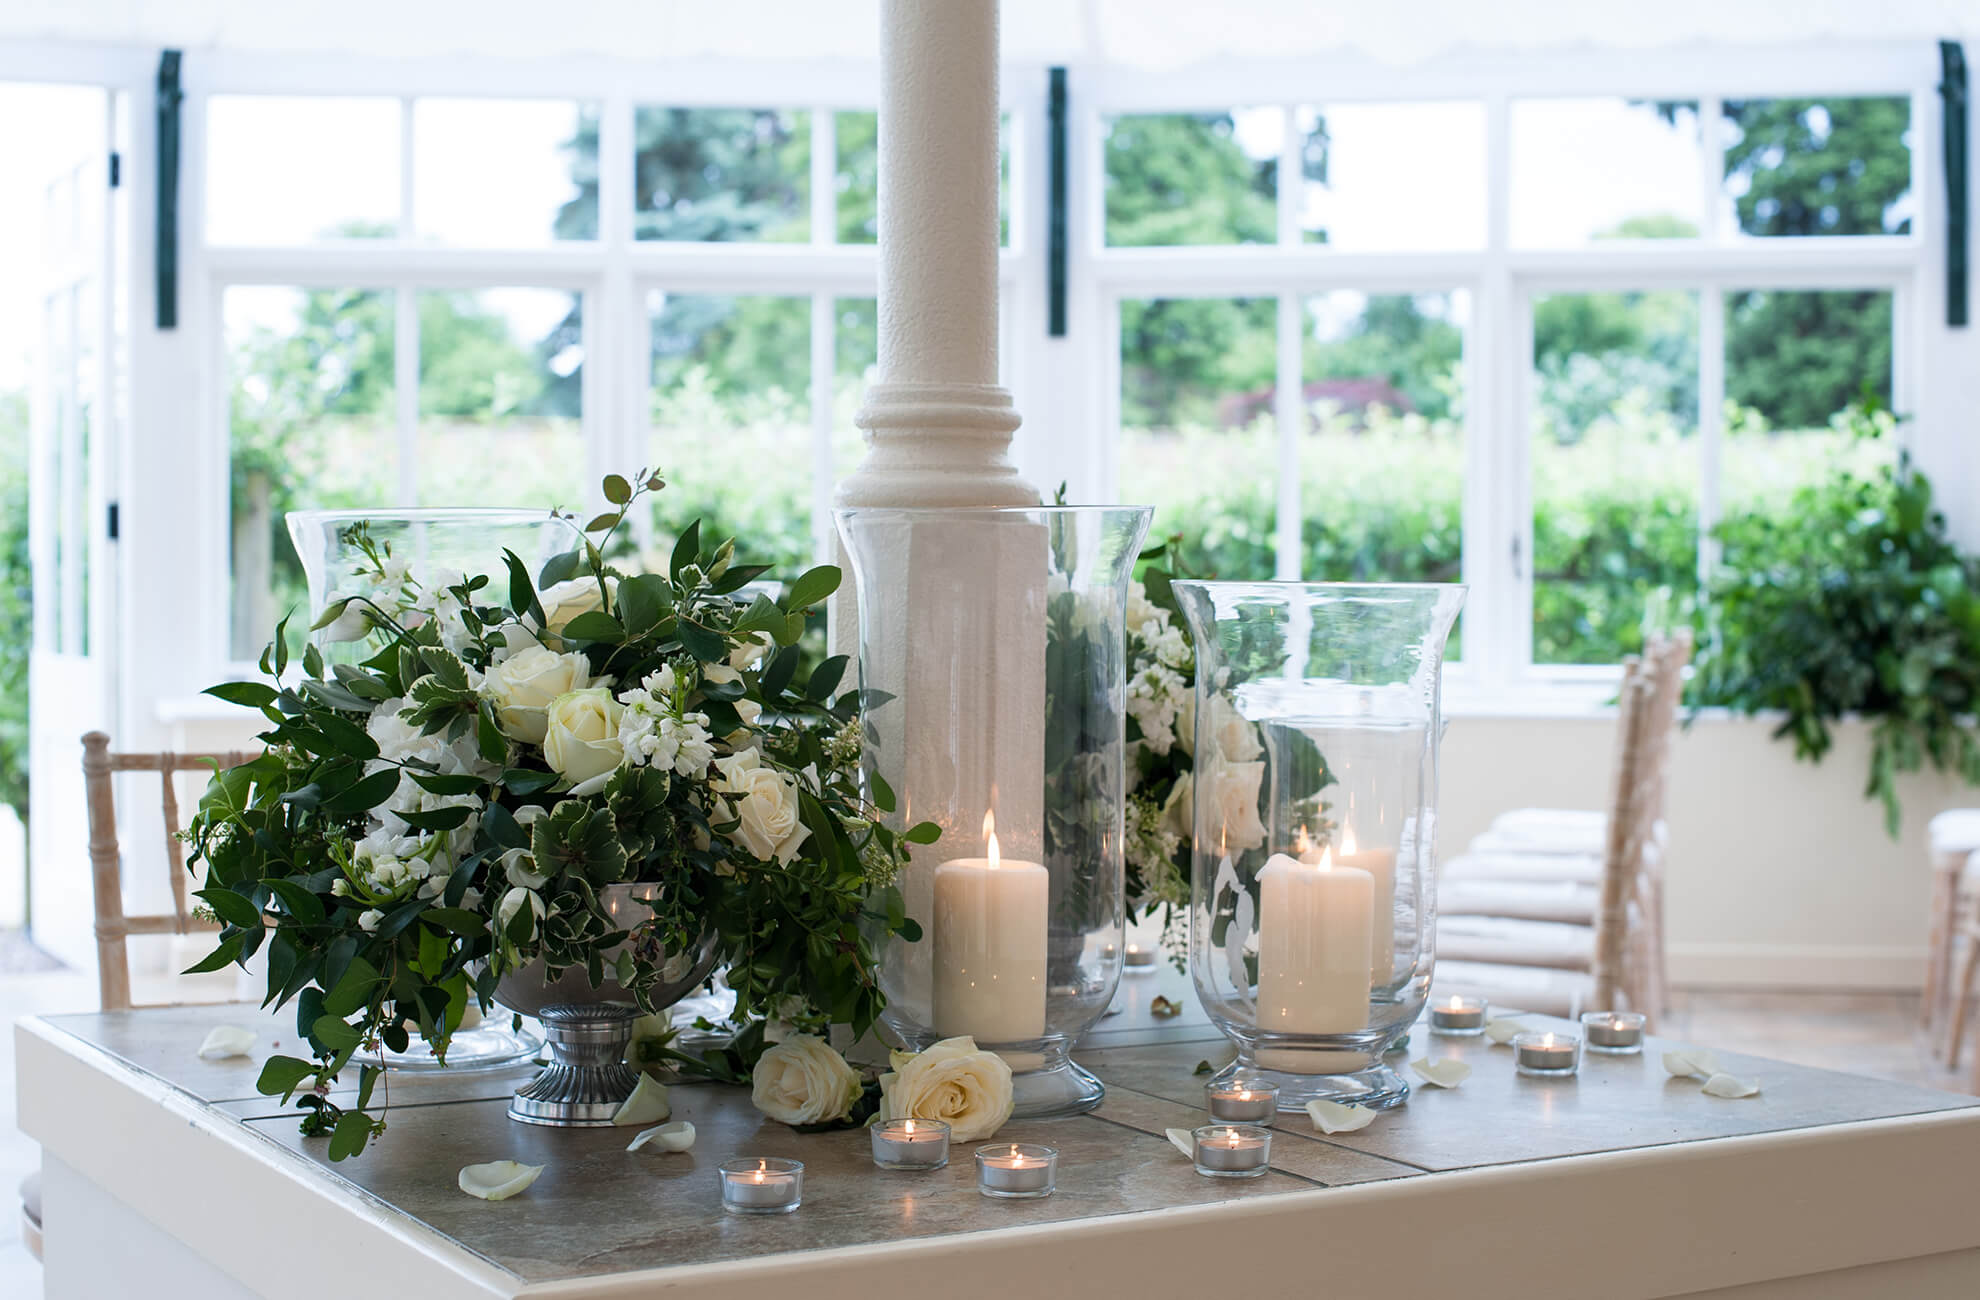 In the Glasshouse at this Cheshire wedding venue white wedding flowers and greenery are used as wedding decorations